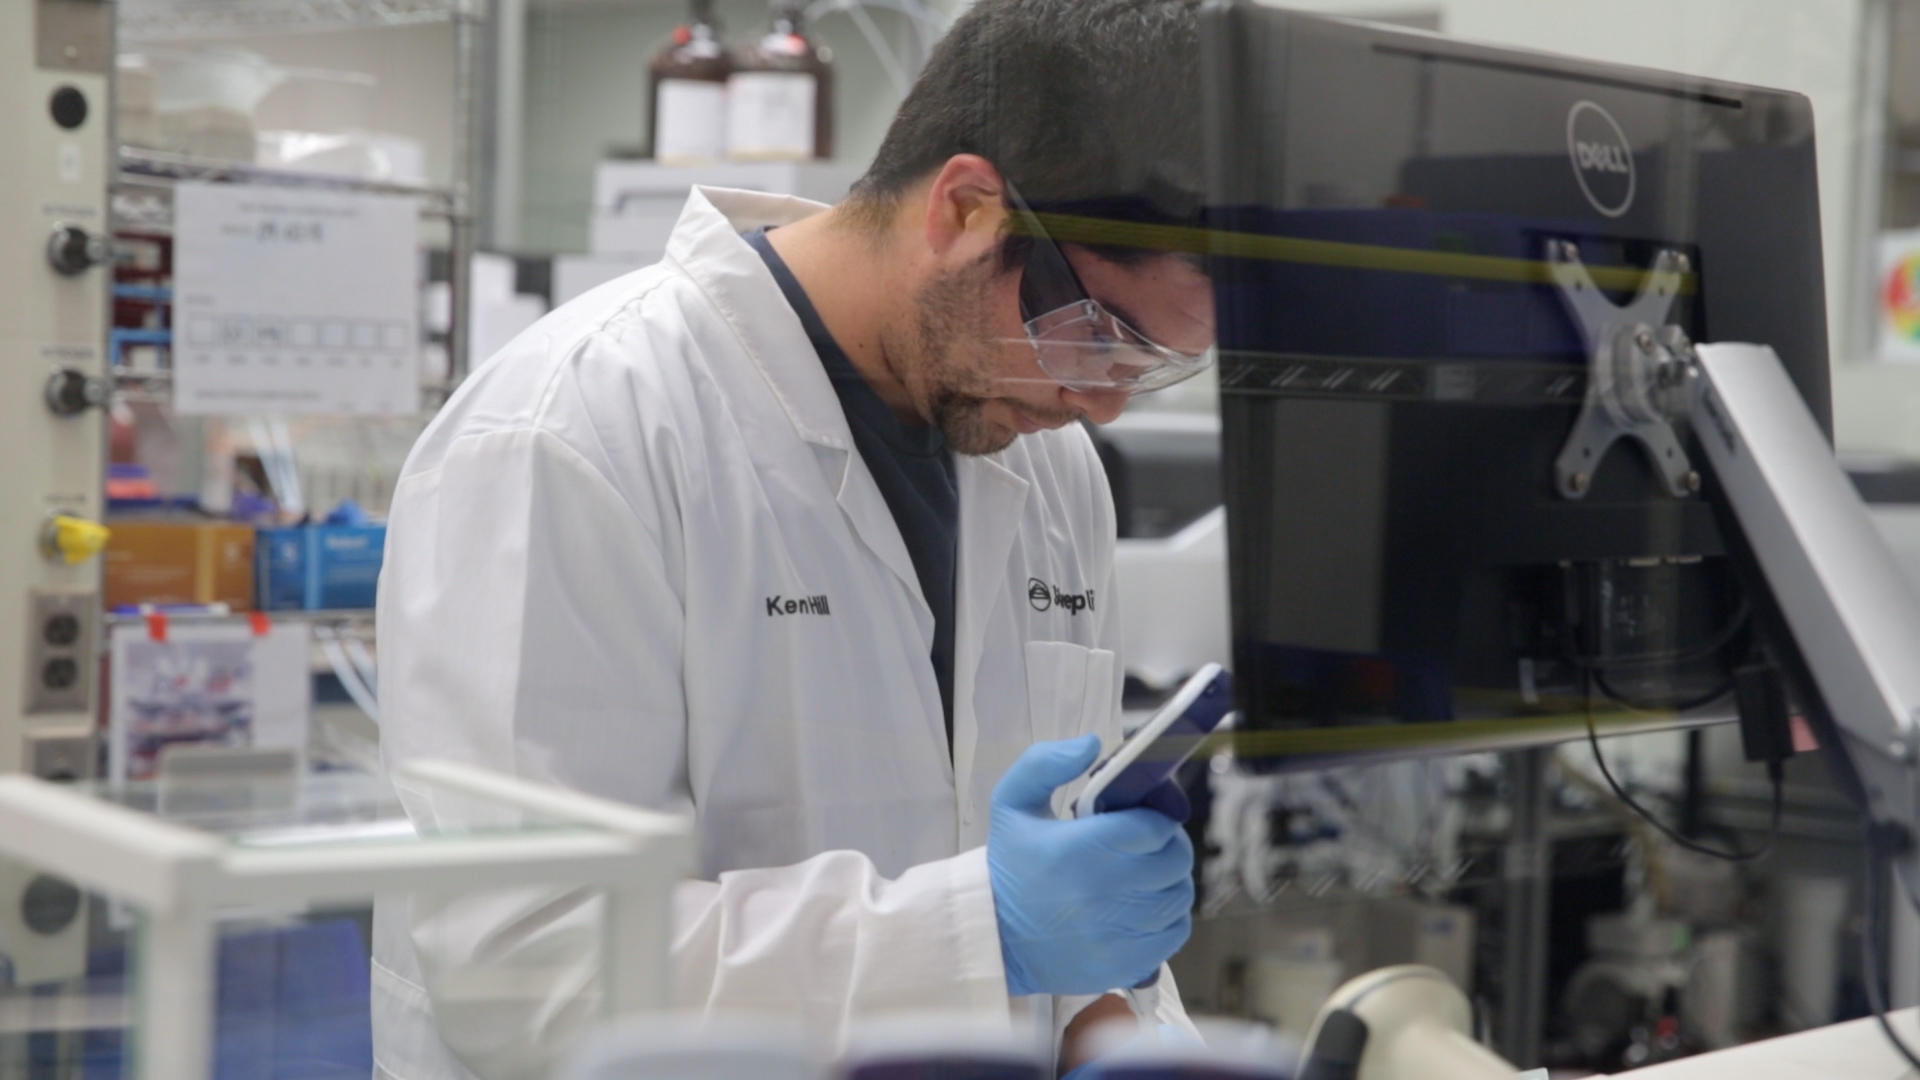 Testing cannabis for purity and potency at Steep Hill Labs in Oakland, California.